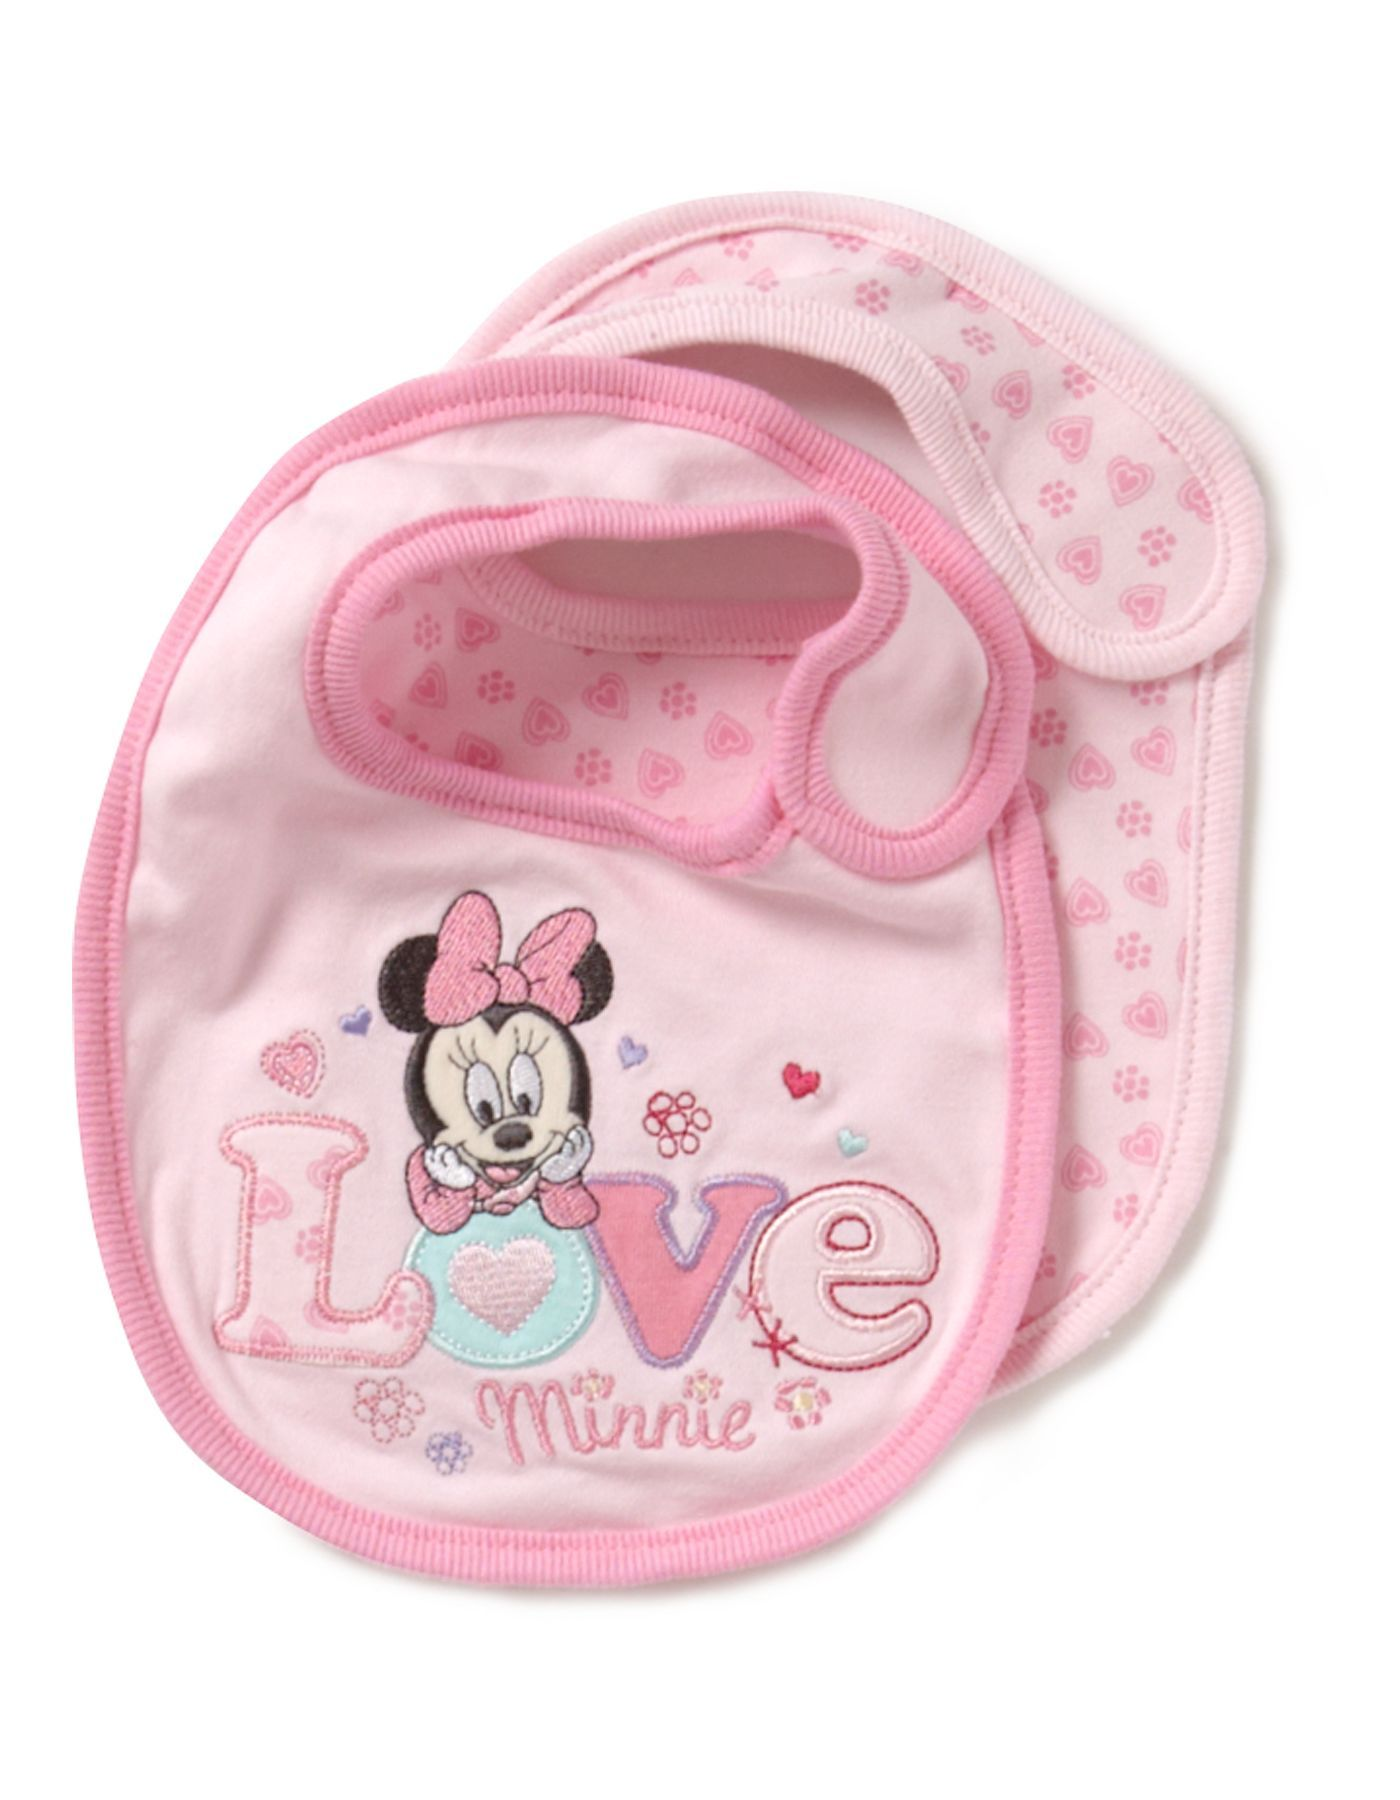 8c25c673b30 2 Pack Minnie Mouse Baby Bibs